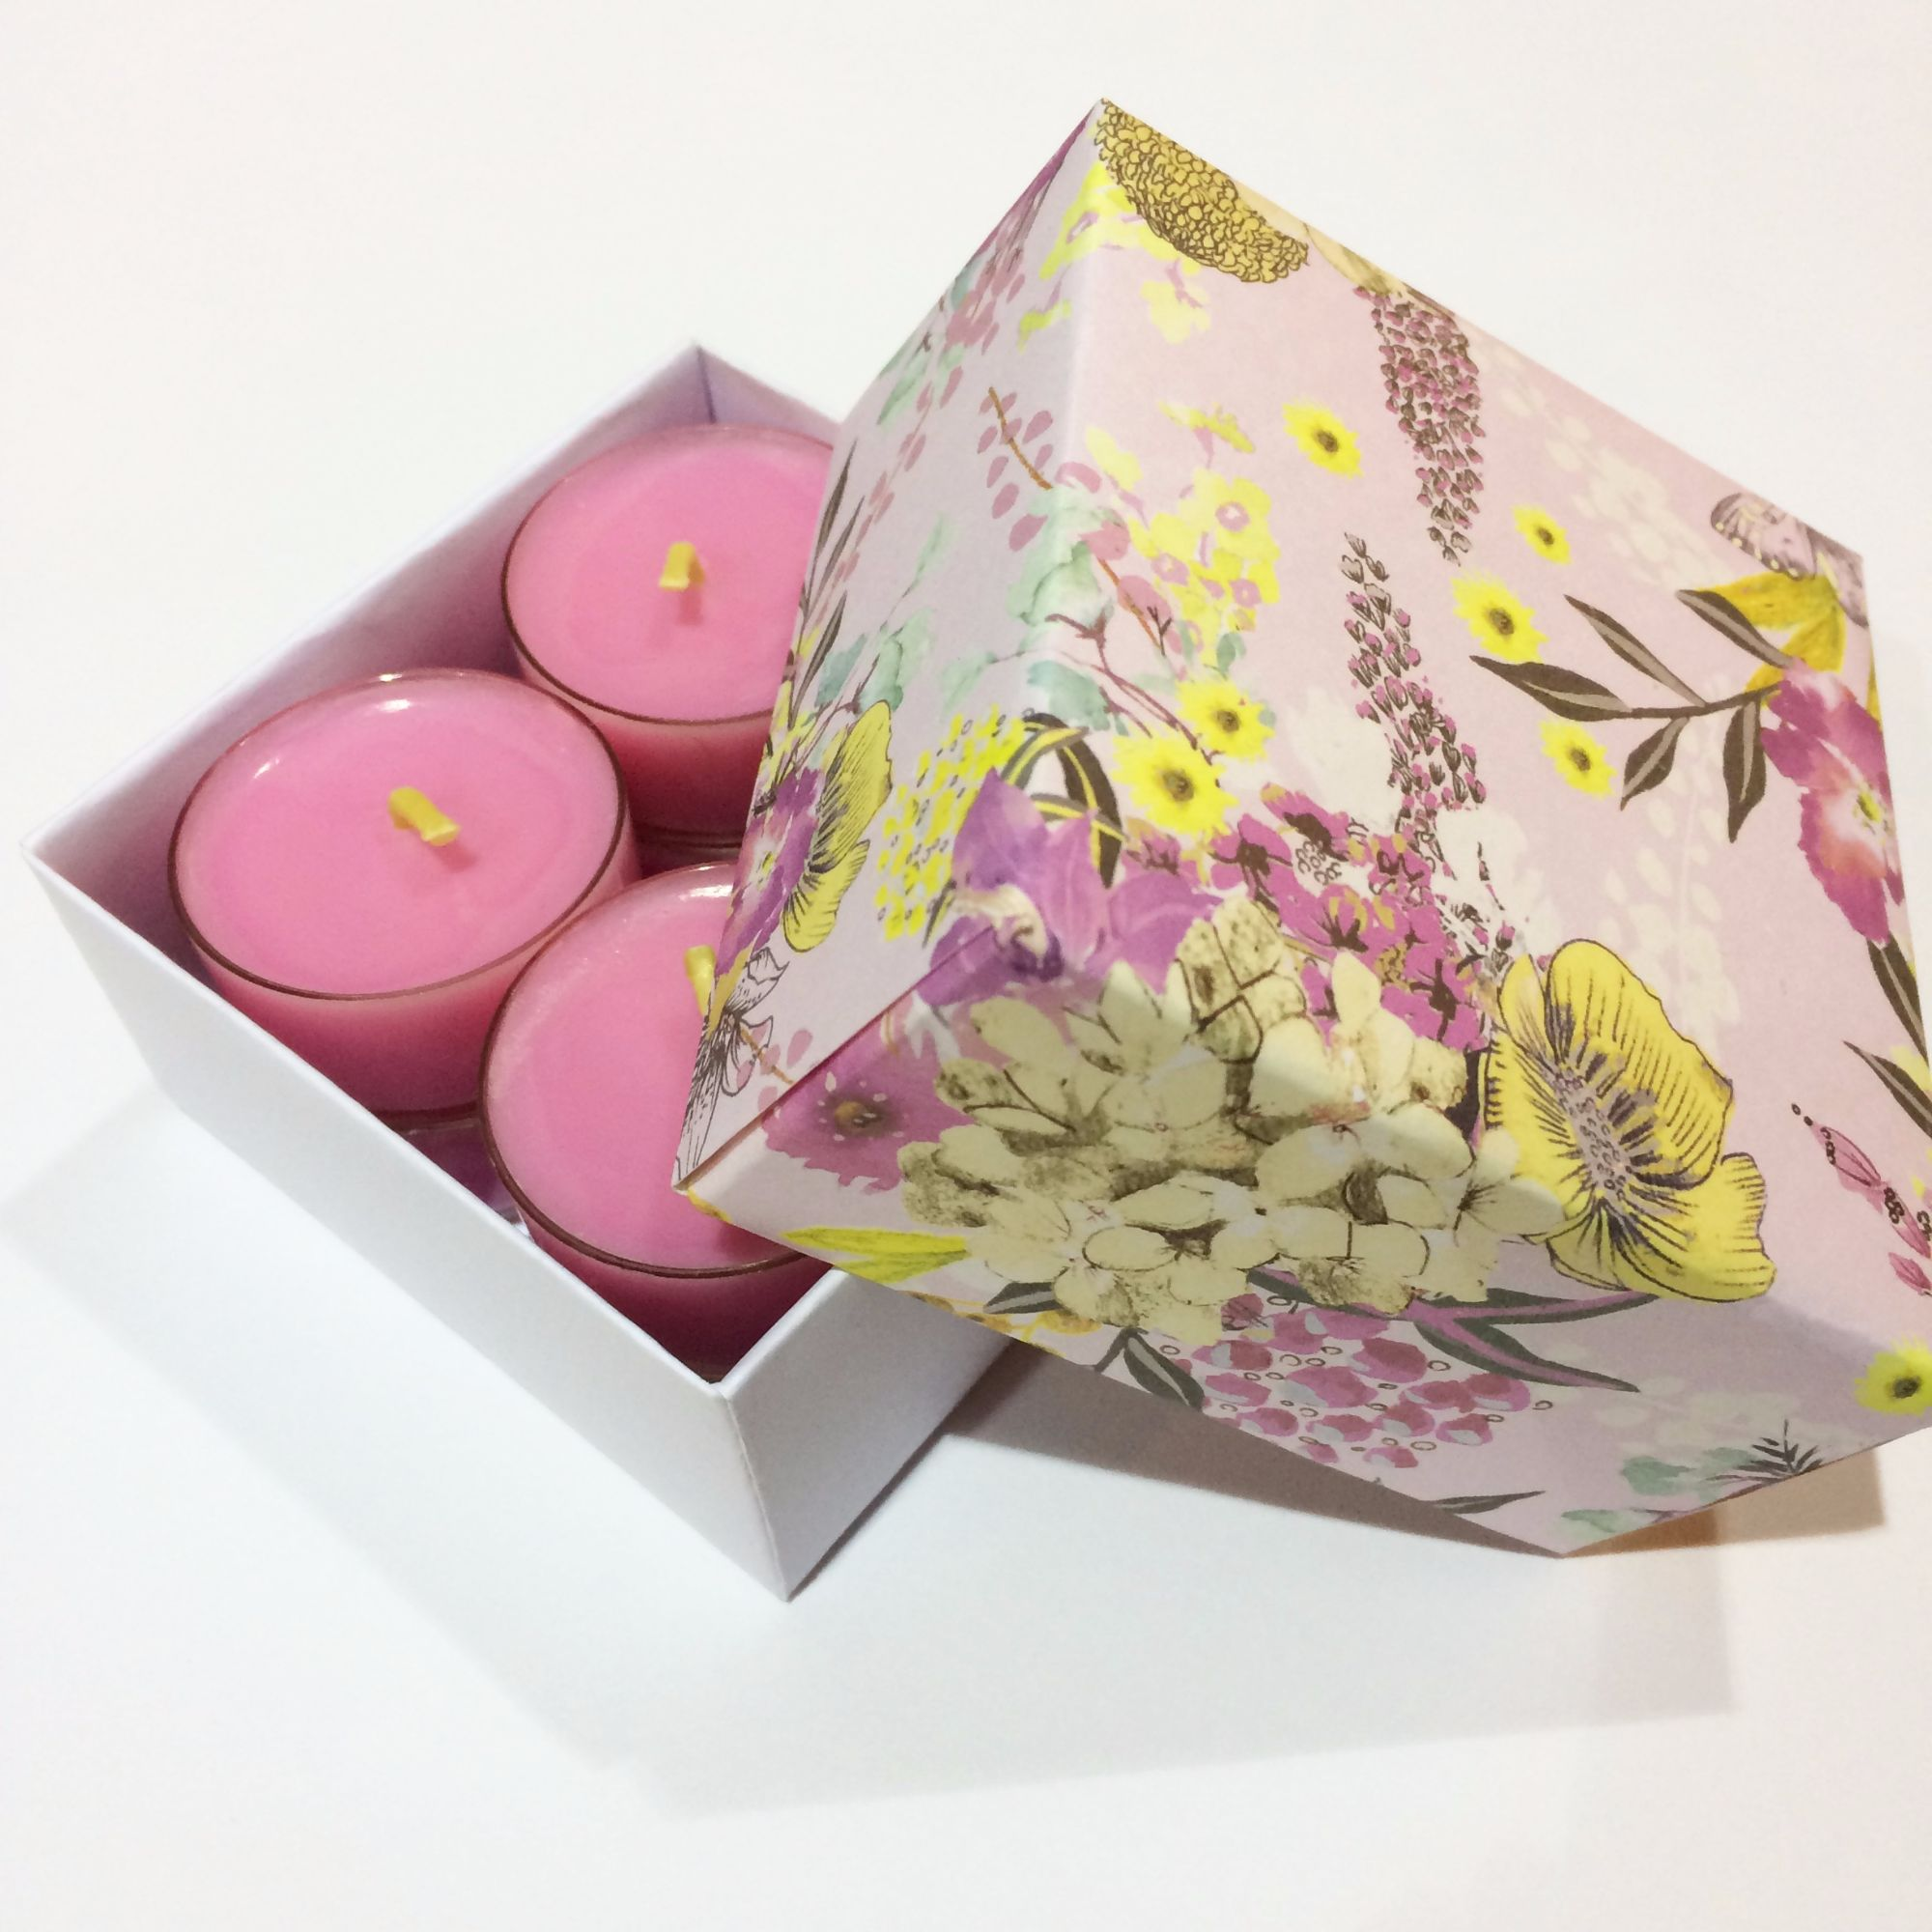 Candle Making Workshop - Packaging